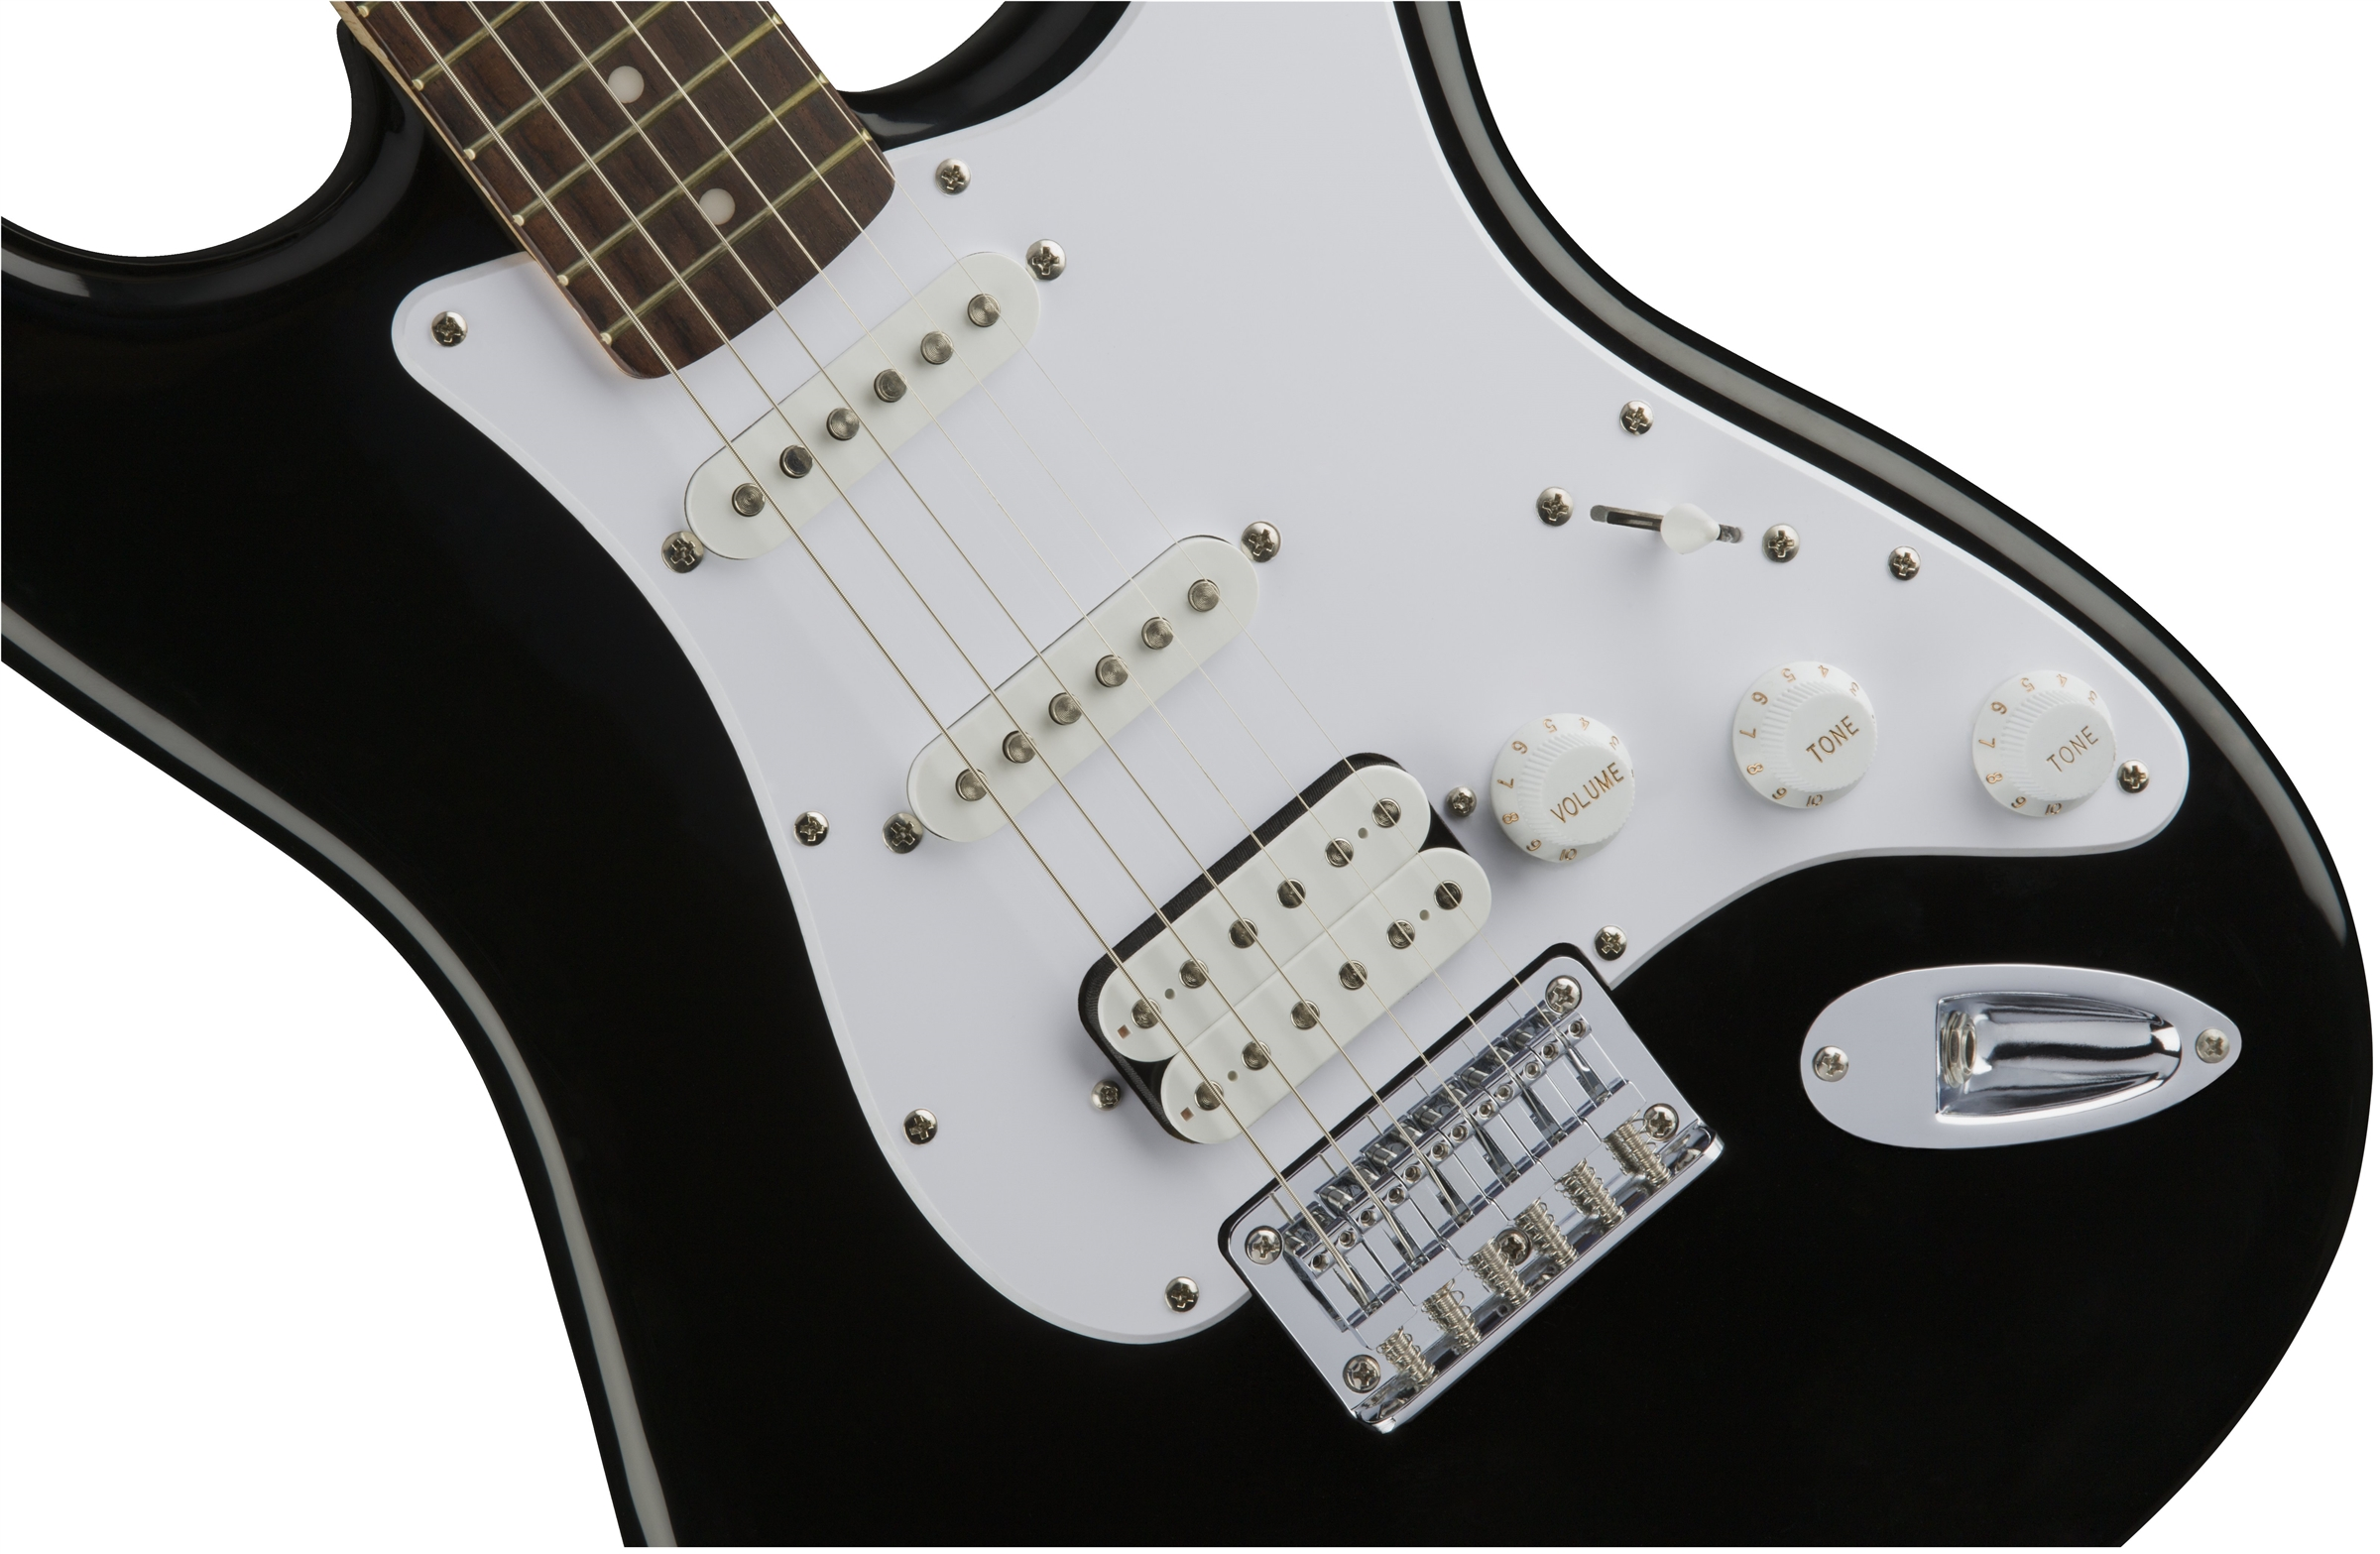 Squier Bullet Strat Review